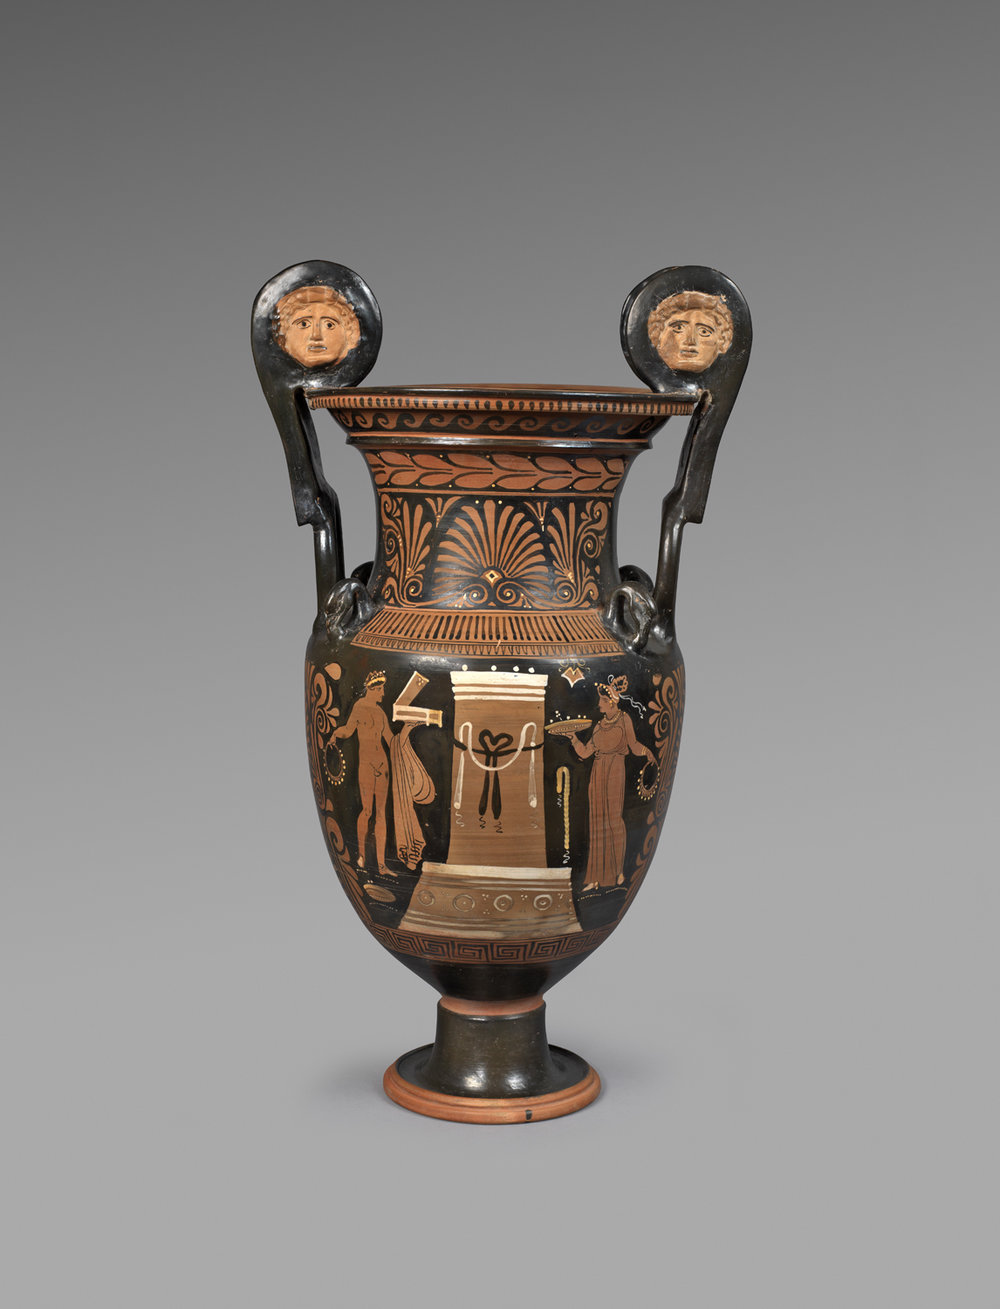 Apulian red-figure volute krater , Attributed to the painter of Copenhagen 4223, circa 330-320 BC, Terracotta, Height 73.5 cm, Courtesy of Rupert Wace Ancient Art Ltd, London